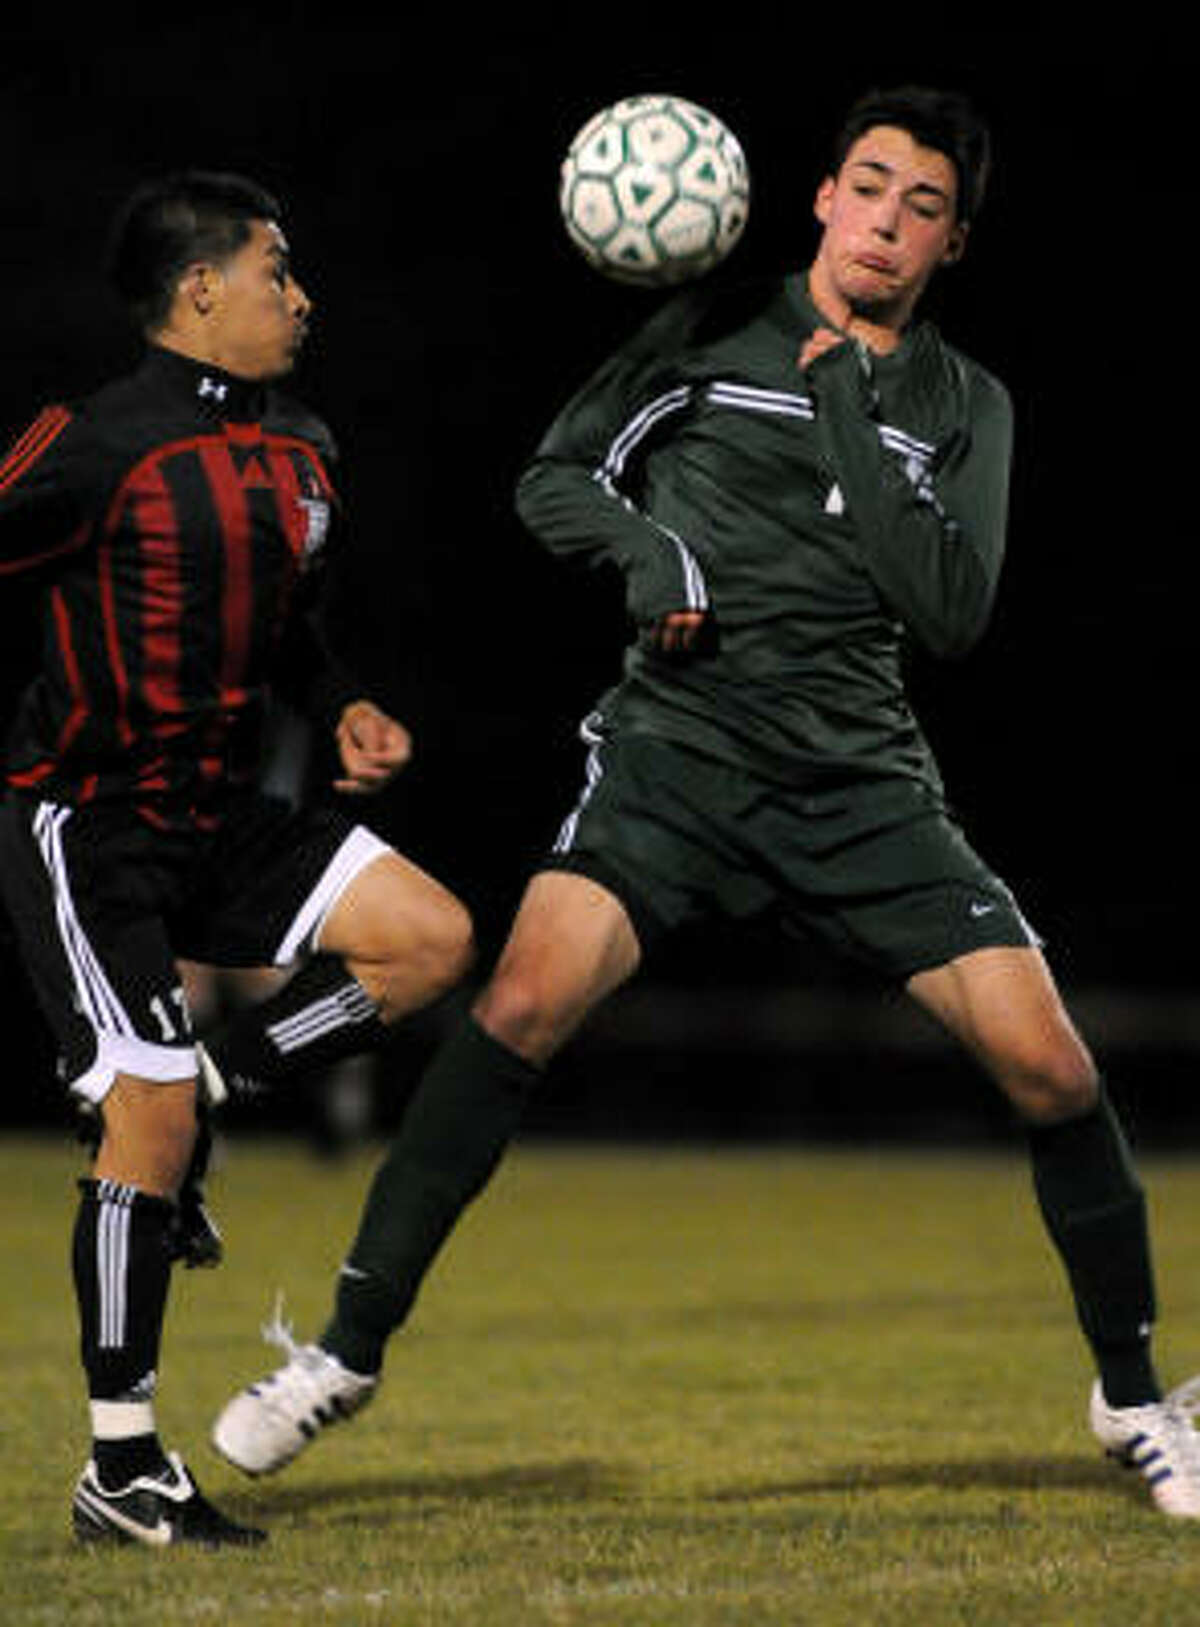 The Woodlands senior defender Max Miller, right, goes one-on-one against Westfield senior forward Fredy Agueta.